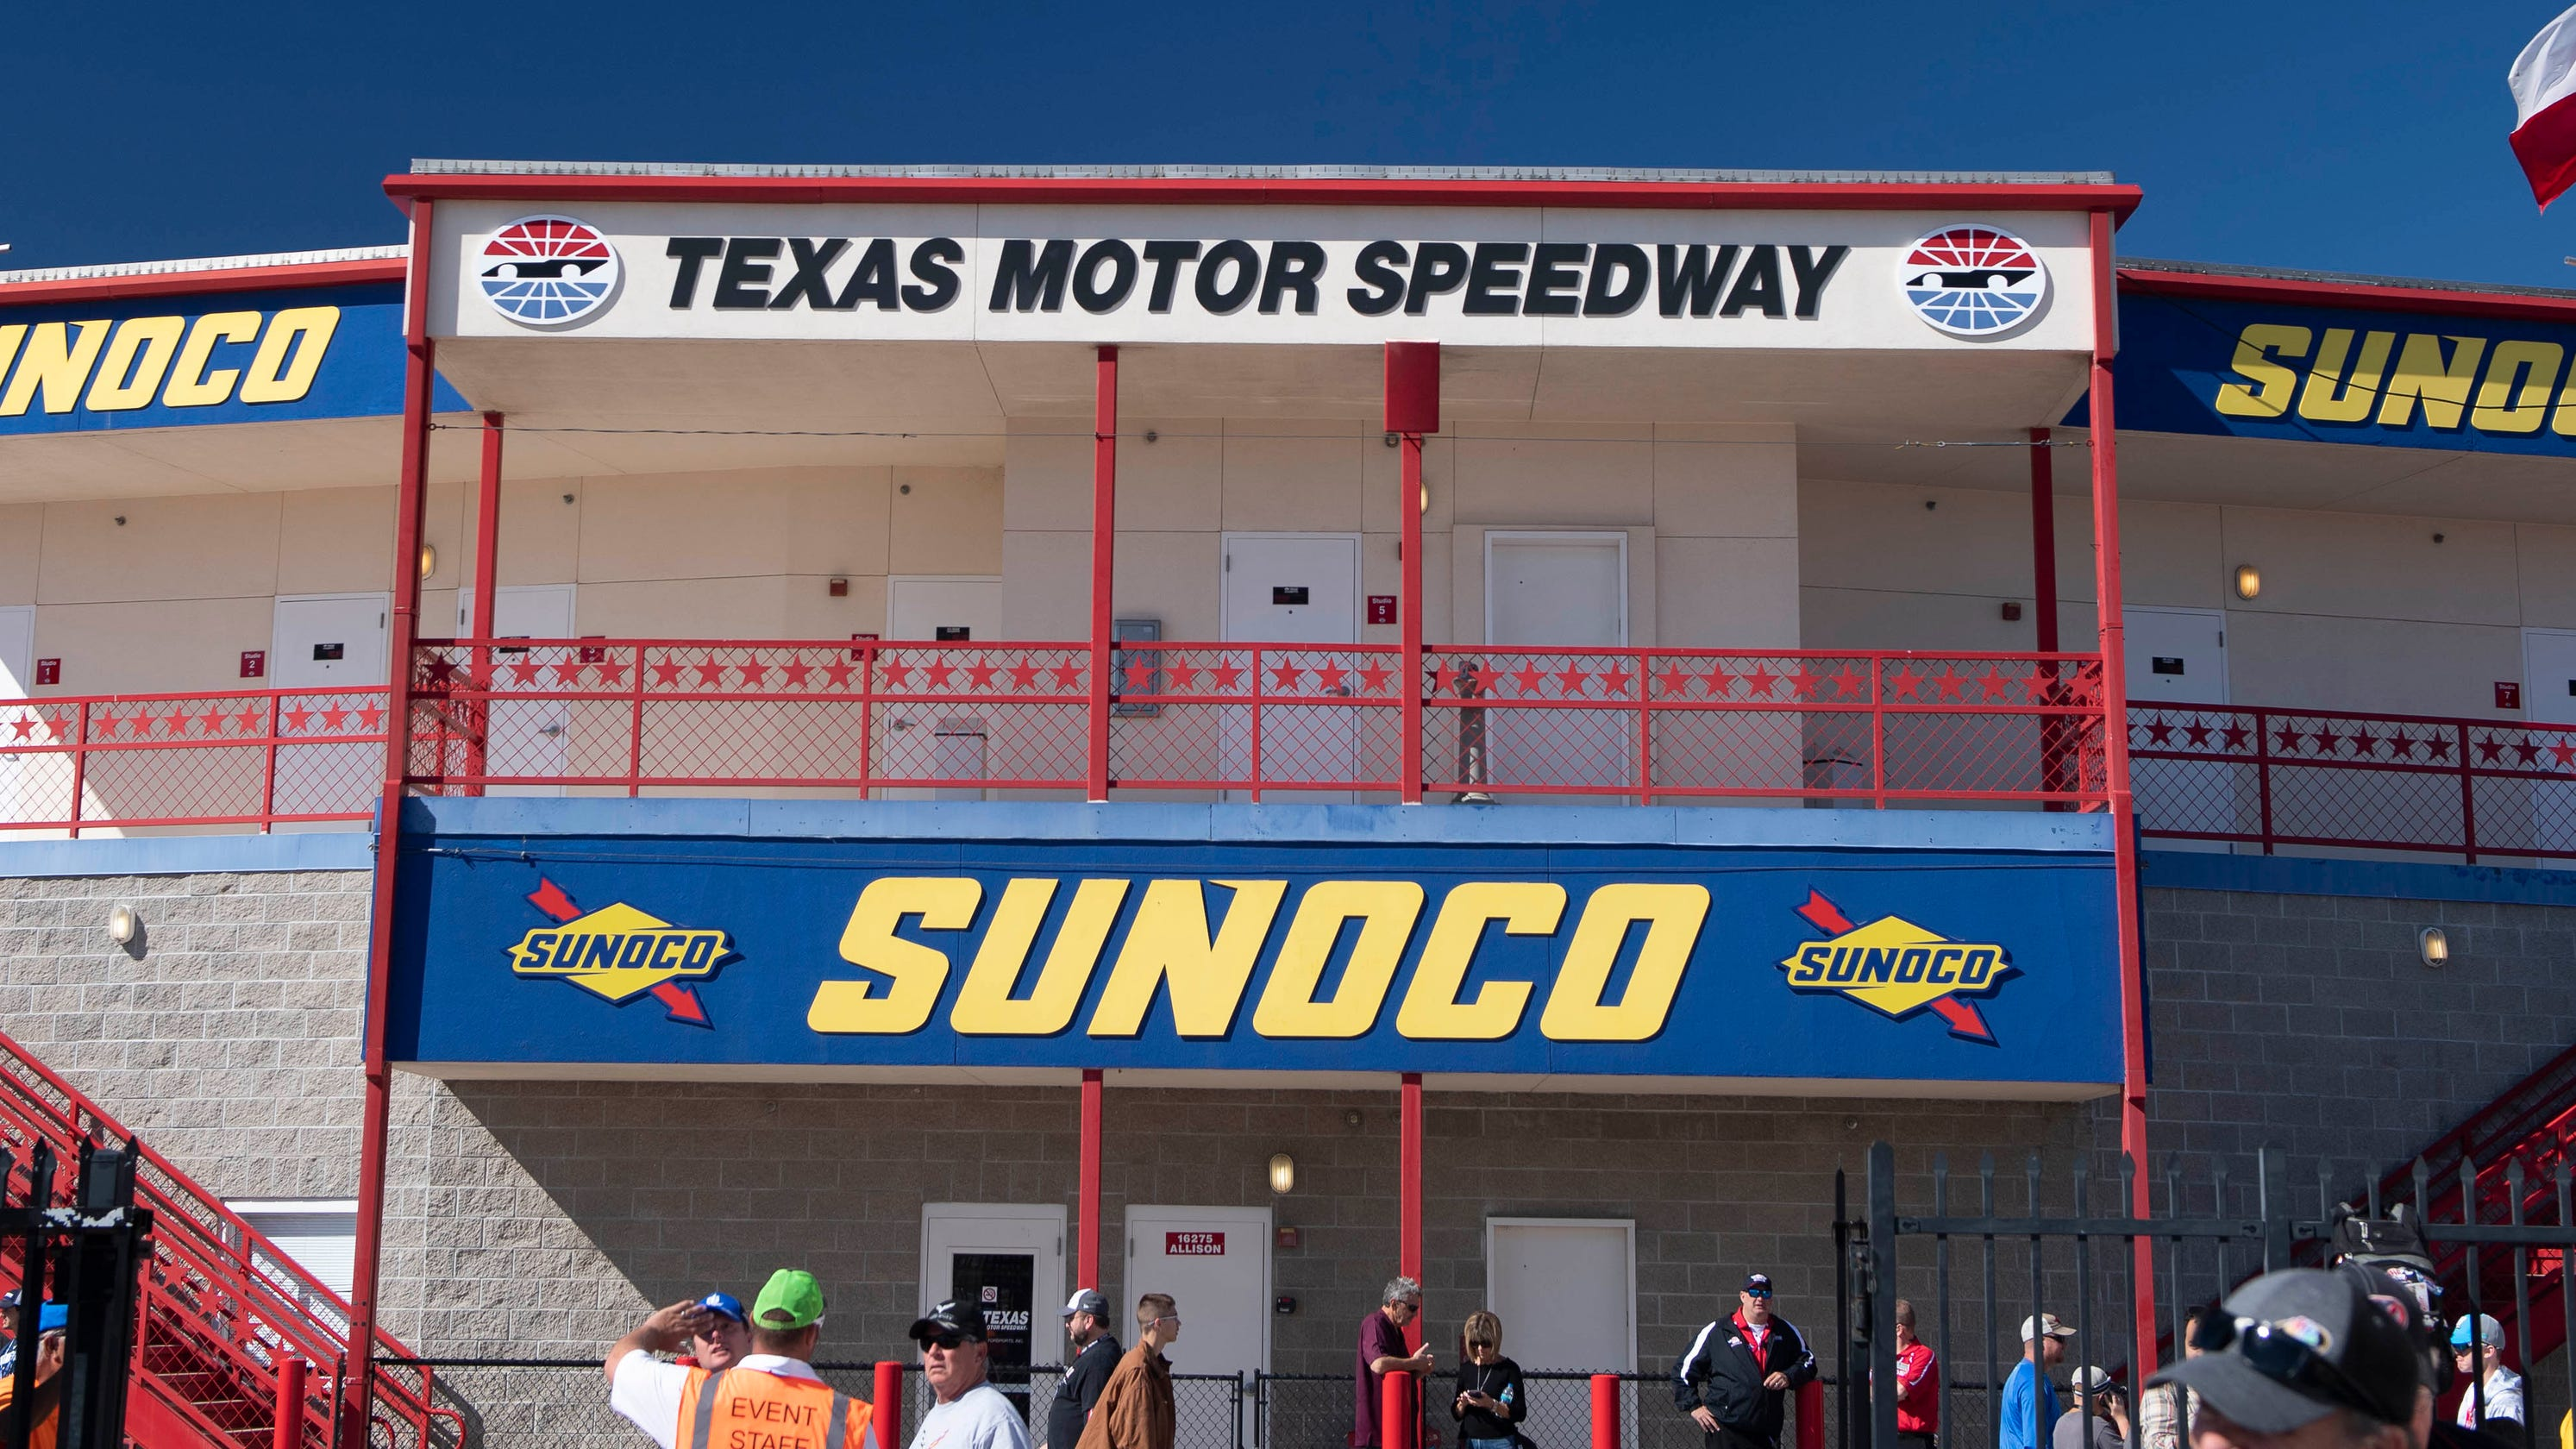 NASCAR race at Texas Motor Speedway could draw over 60,000 fans as coronavirus ravages state